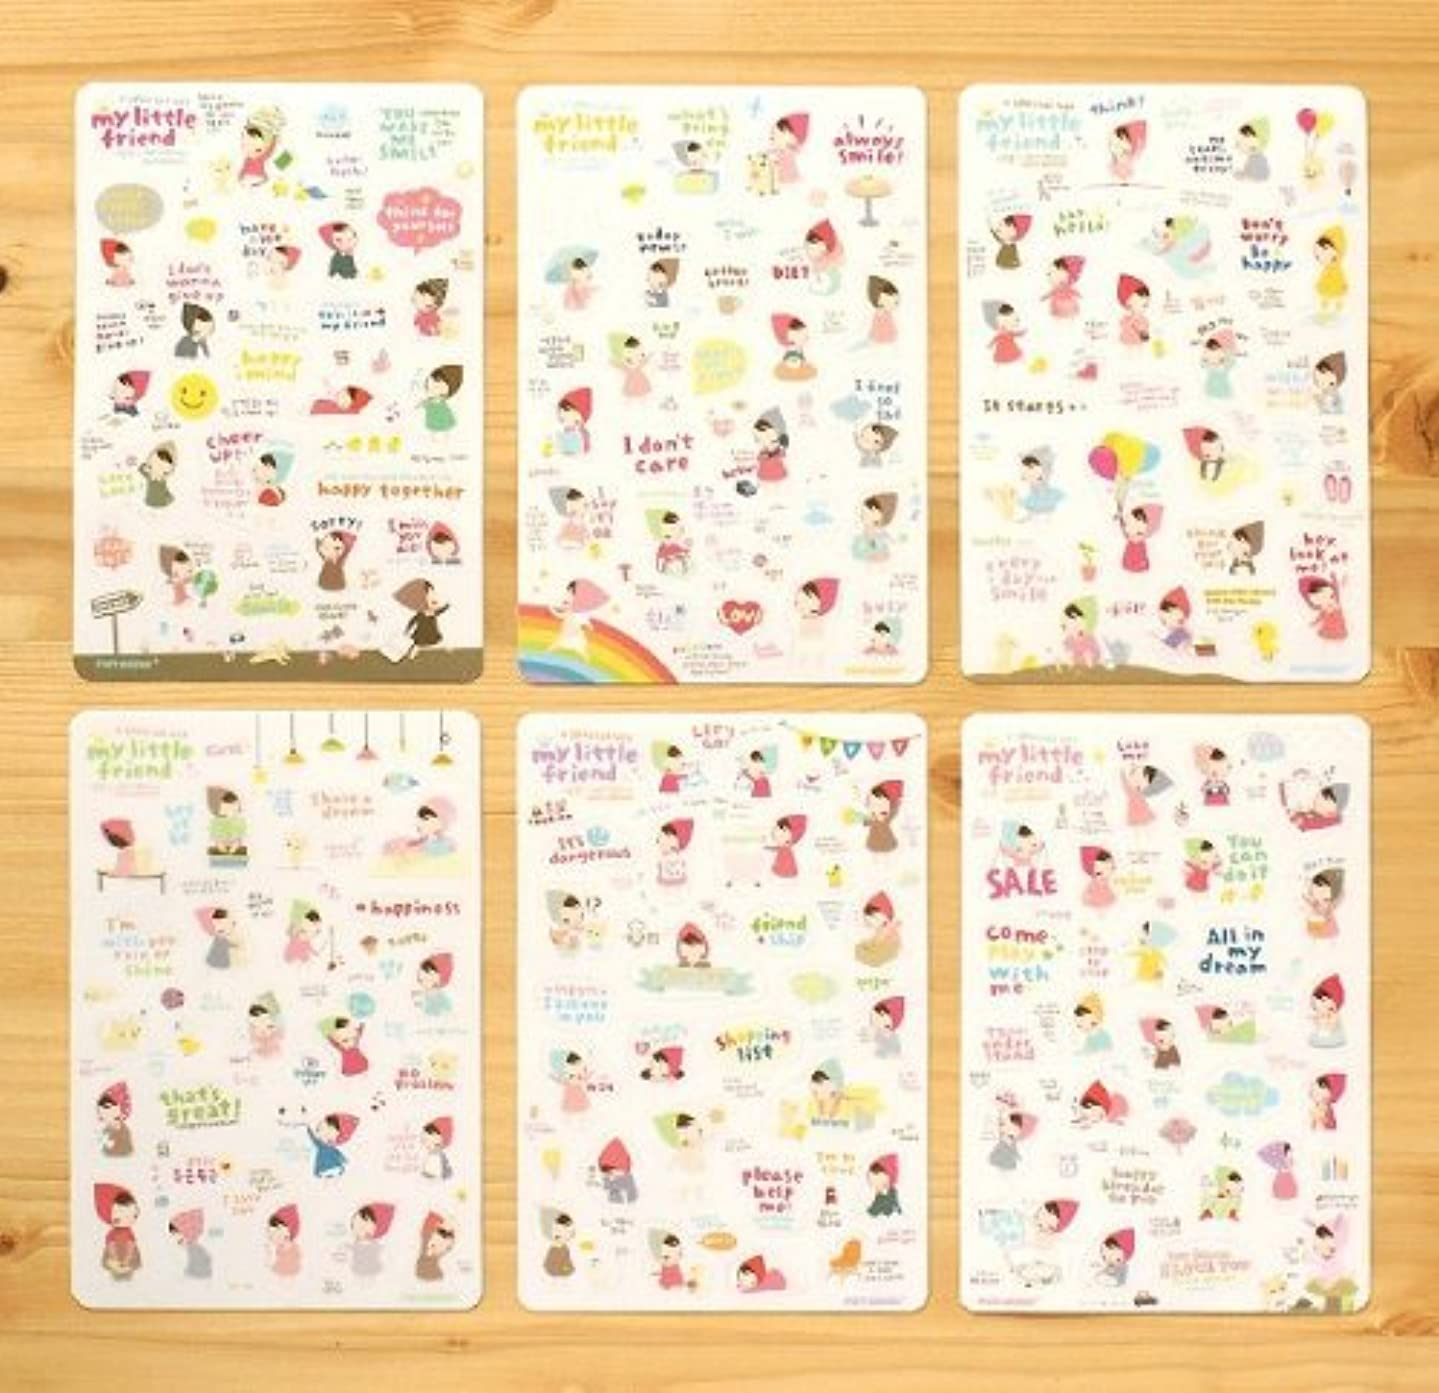 ONOR-Tech 6 Sheets Cartoon Lovely Scrapbooking Diary, Album Phone Sticker Adhesive